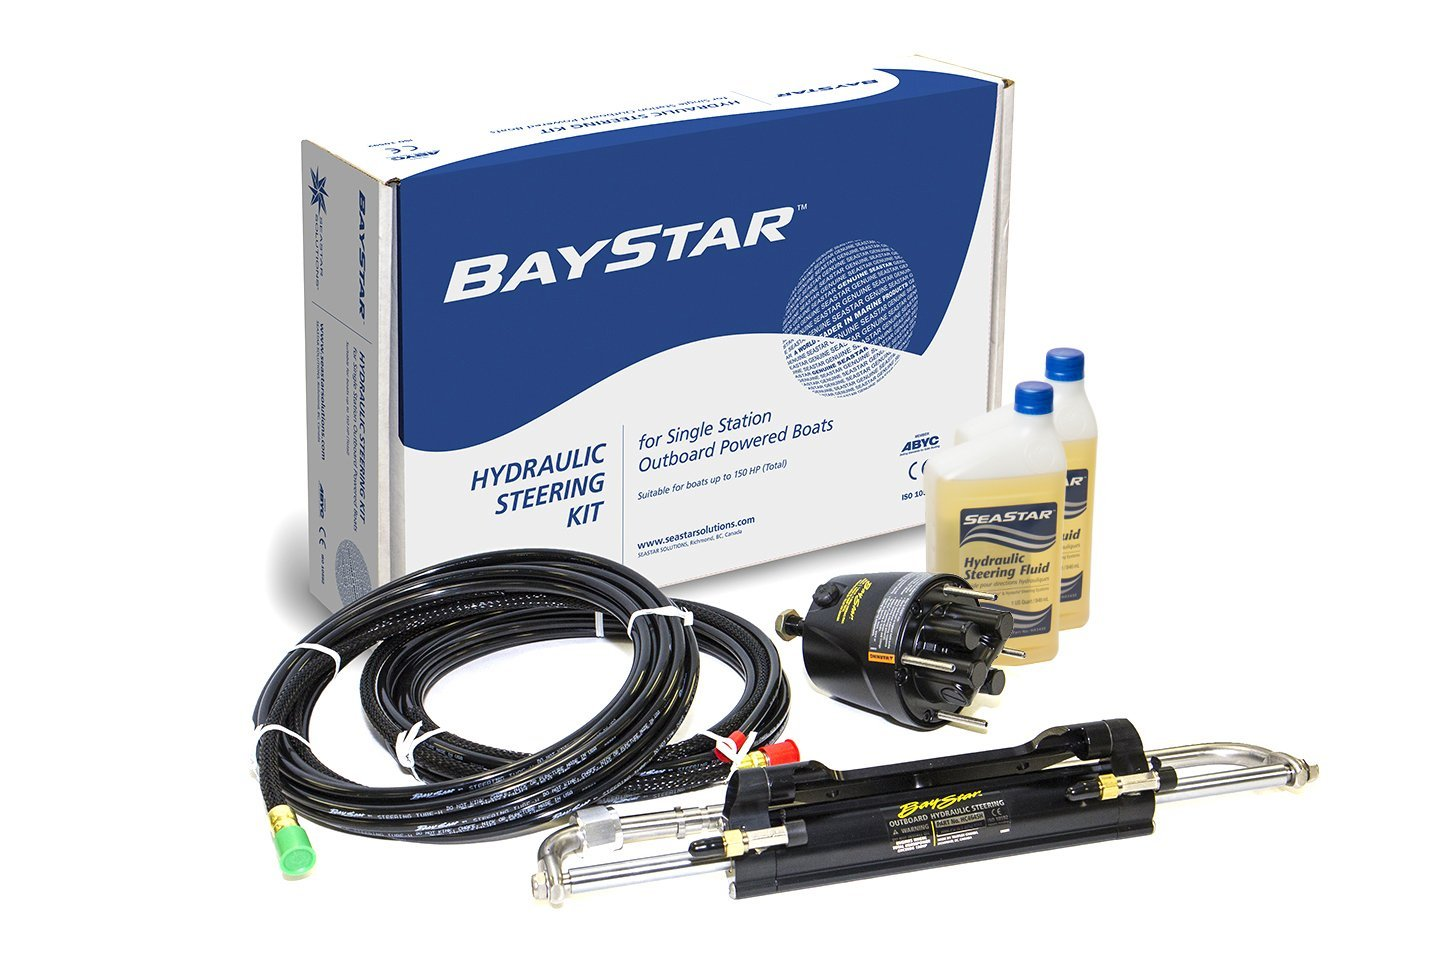 This photo shows the parts of the BayStar hydraulic steering system for single engines up to 150 hp.